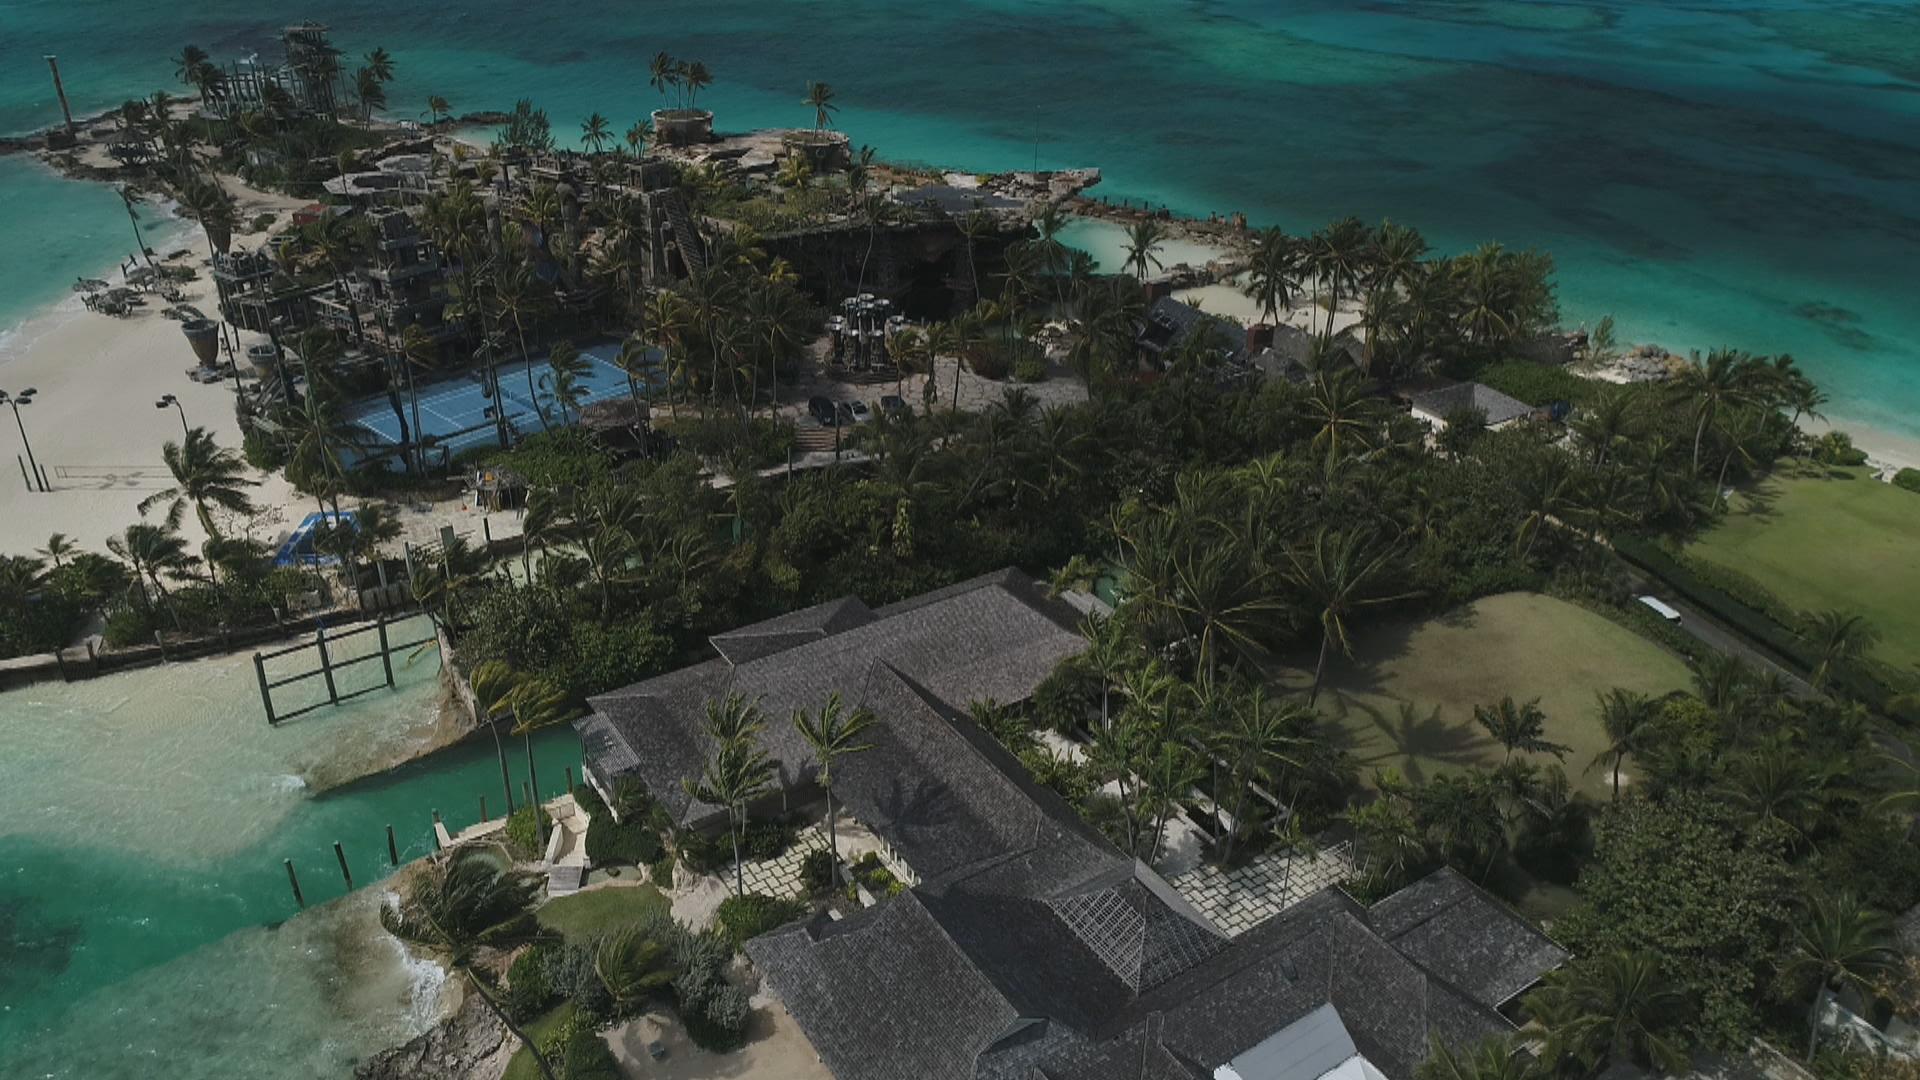 Nygard and Bacon began feuding in 2009. Their homes in the Bahamas are side by side. (CBC)